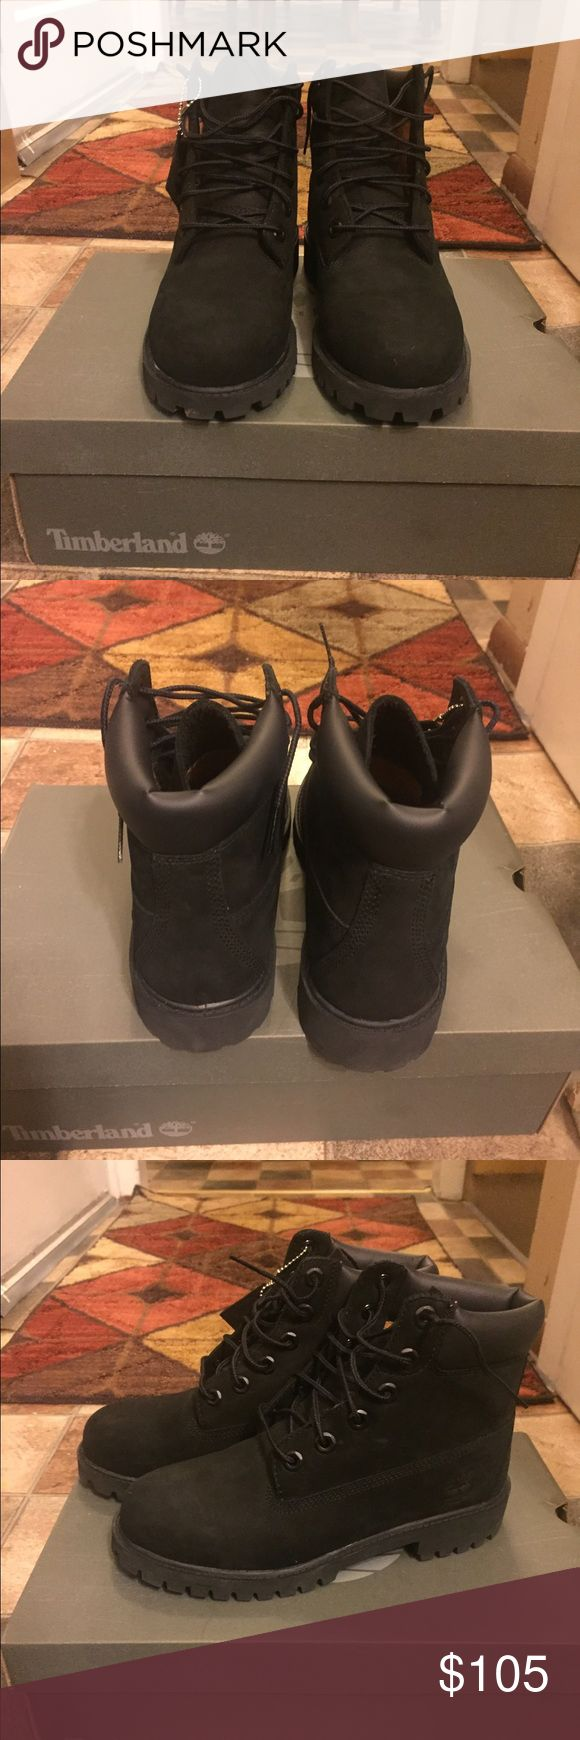 Black Timberlands -All black timberlands. They are in perfect condition & were only worn one time! Just weren't my size. Timberland Shoes